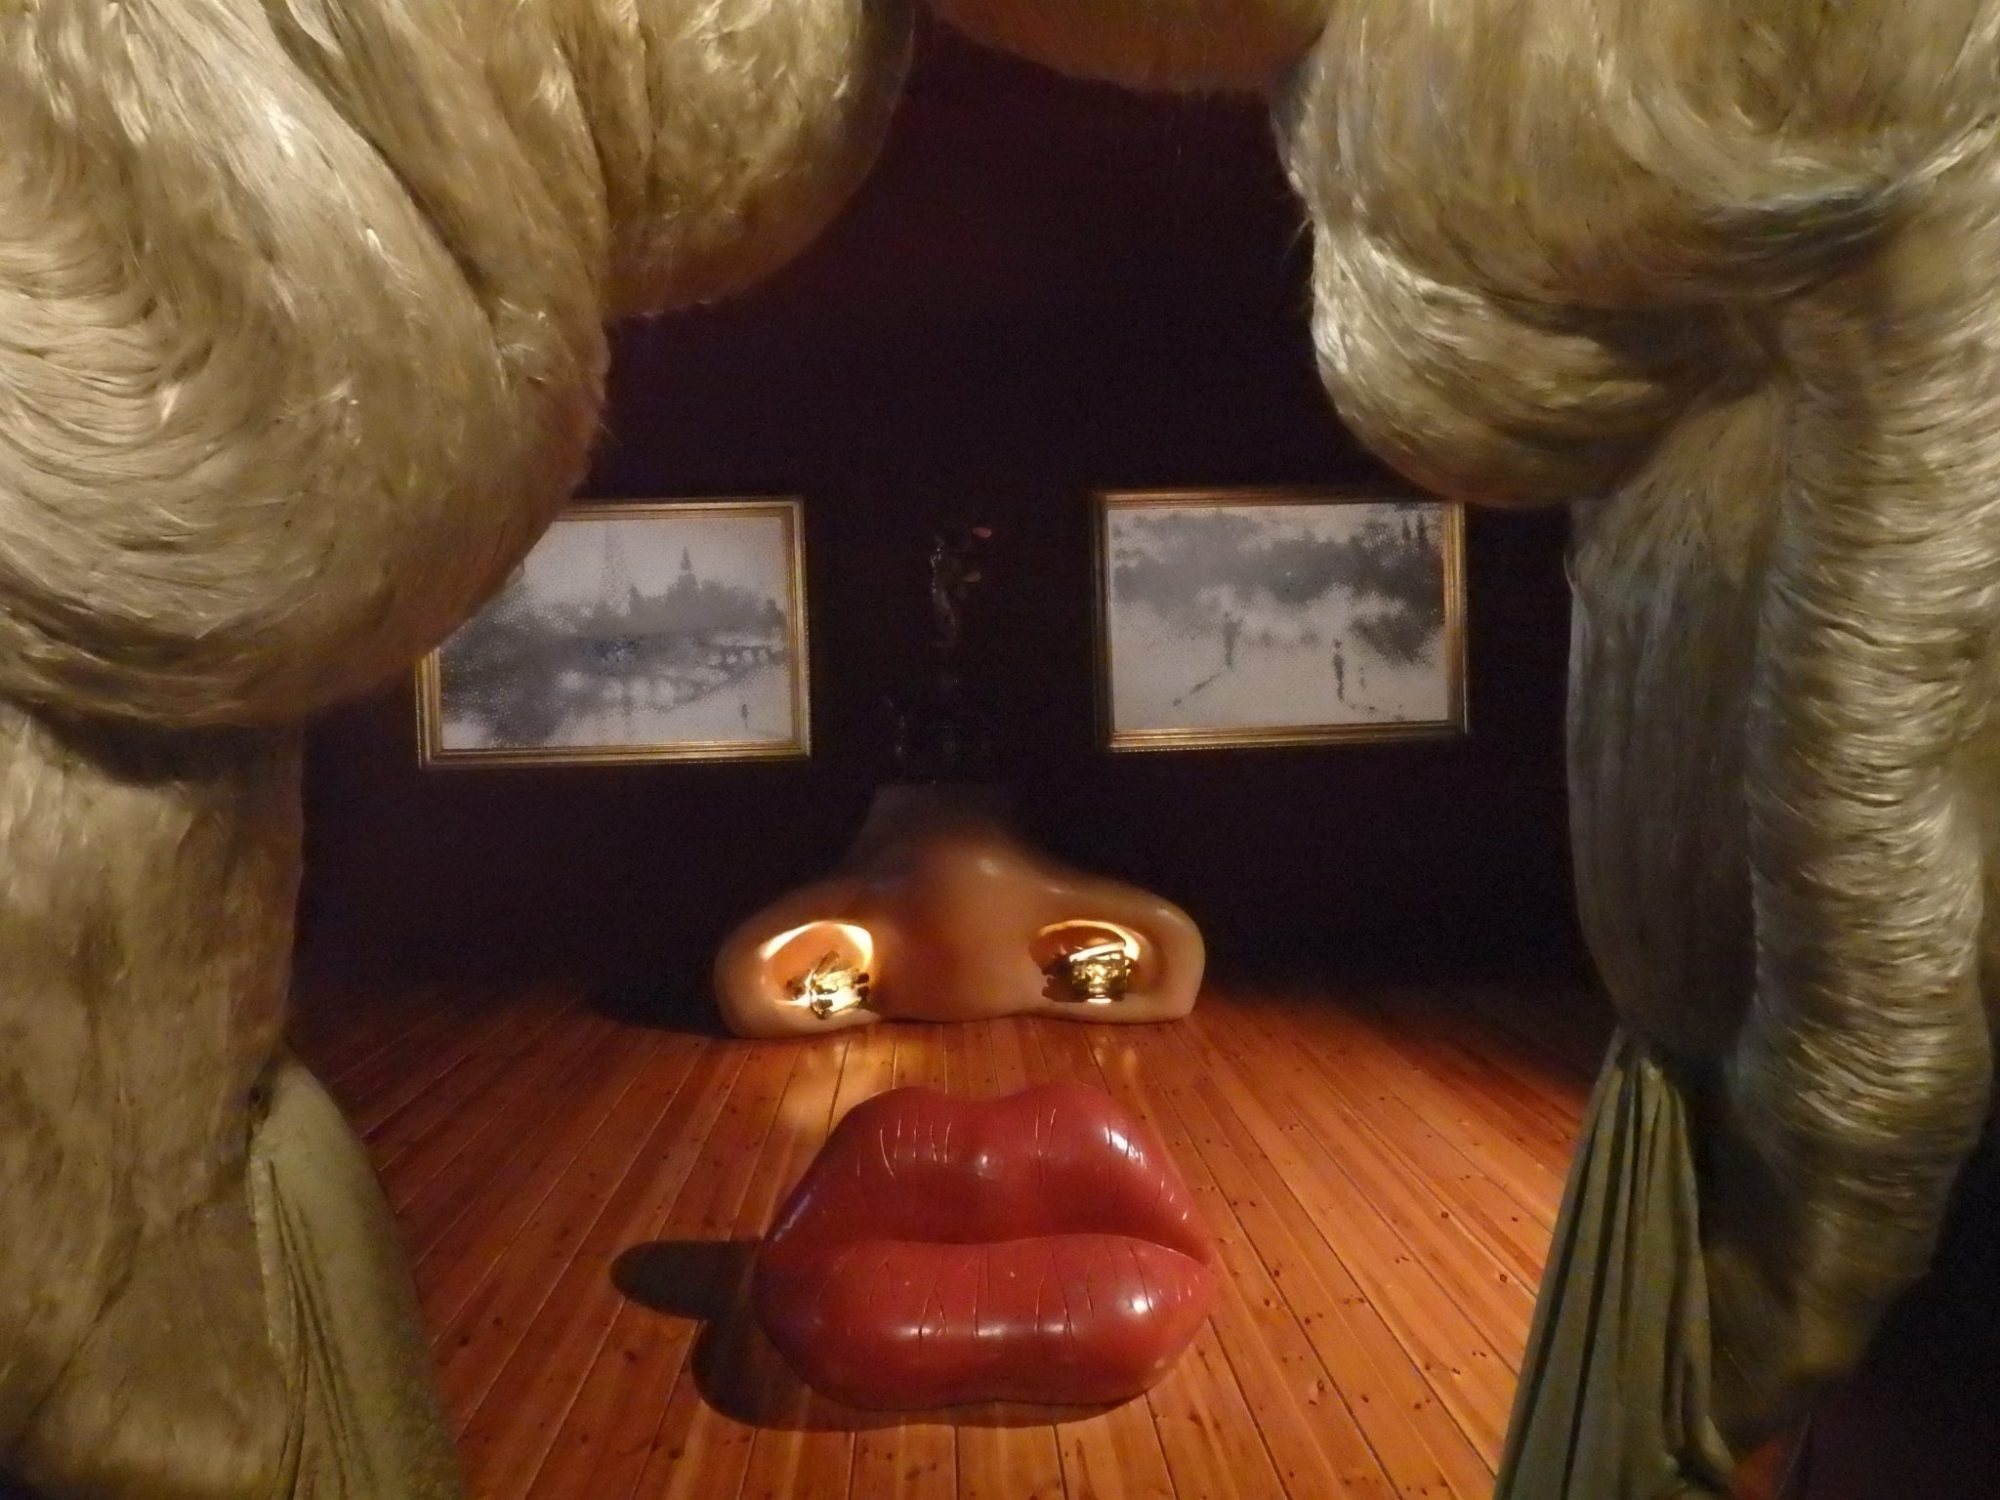 Dali version of Mae West, in the Dali Theatre-Museum in Figueres, Spain